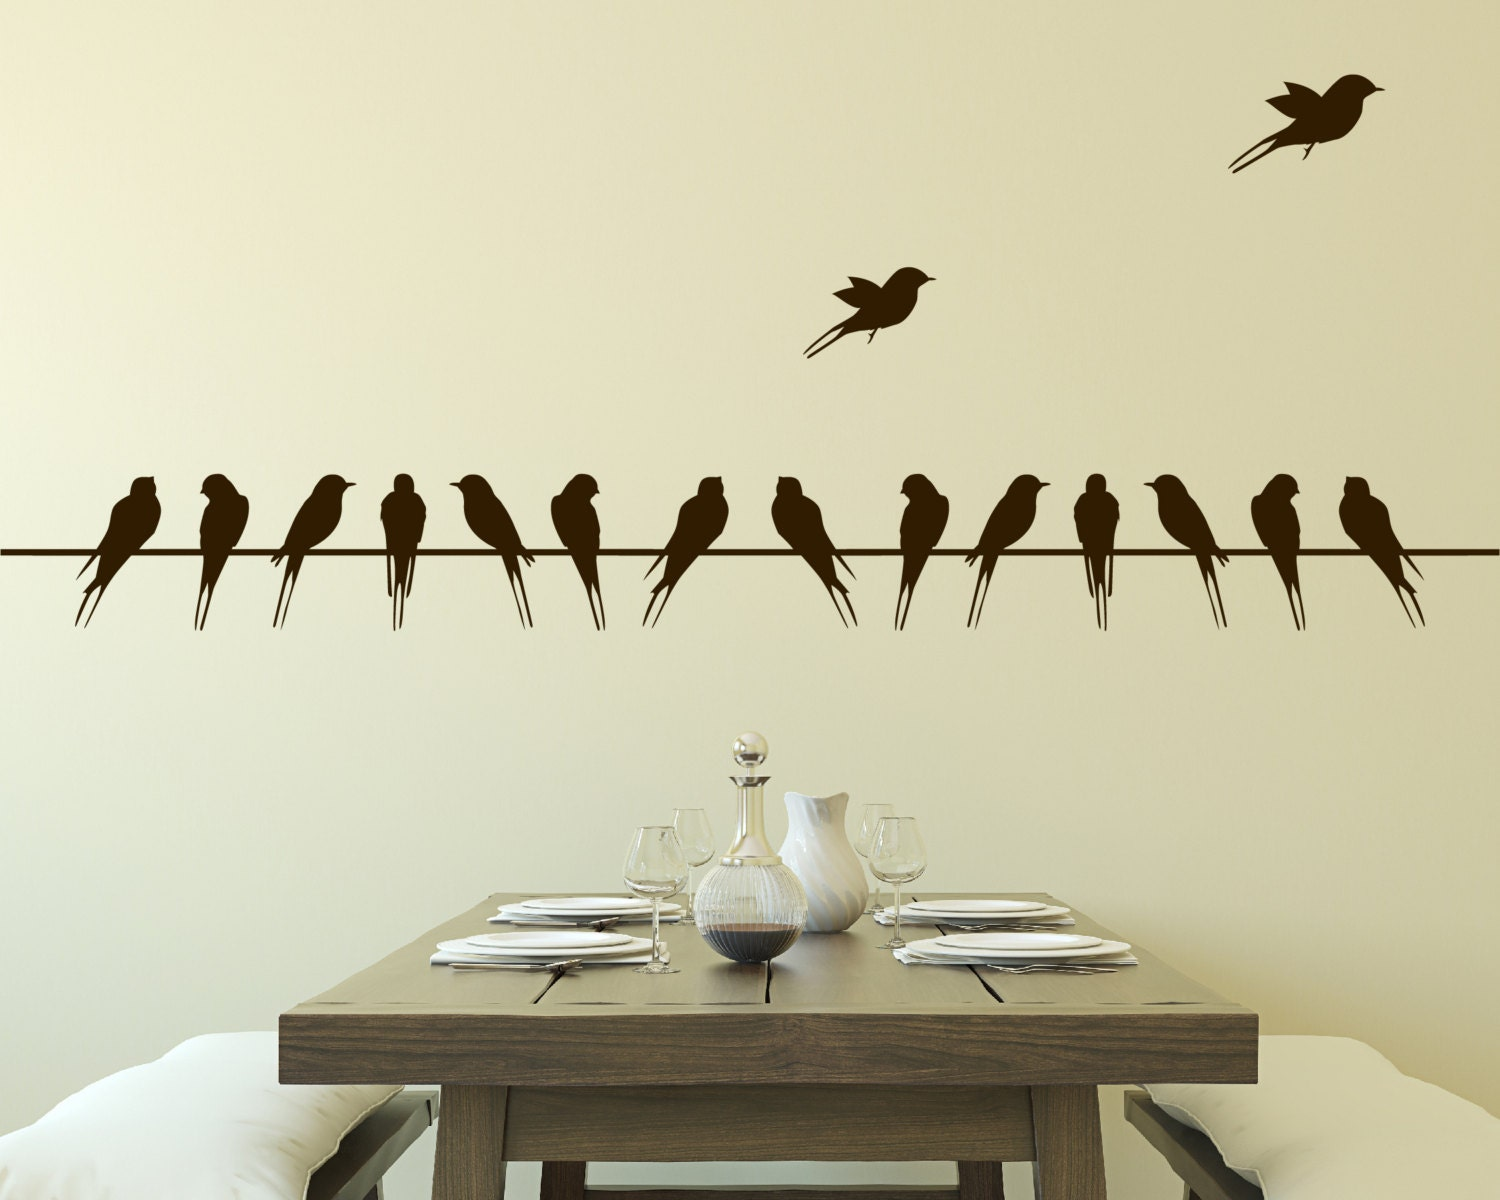 Wall decal birds on wire vinyl wall decal for Salle de bain design avec décoration murale stickers muraux autocollants